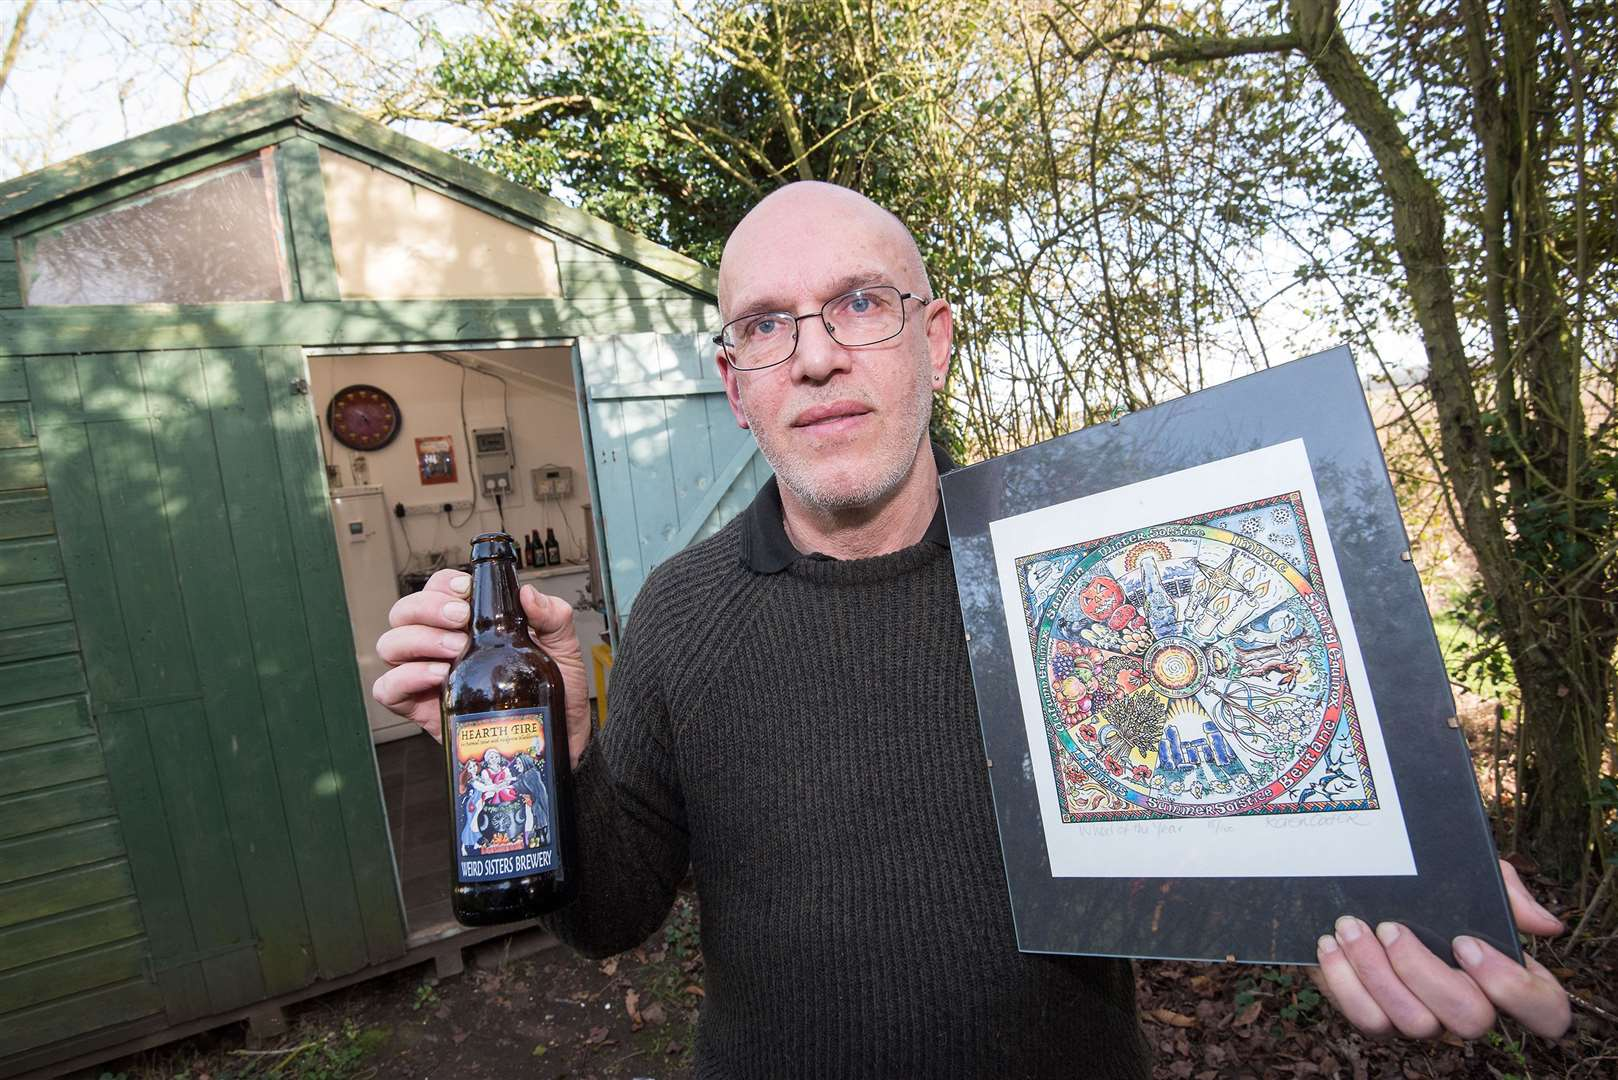 Paul Canham who runs his Weird Sisters micro brewery. Picture by Mark Westley